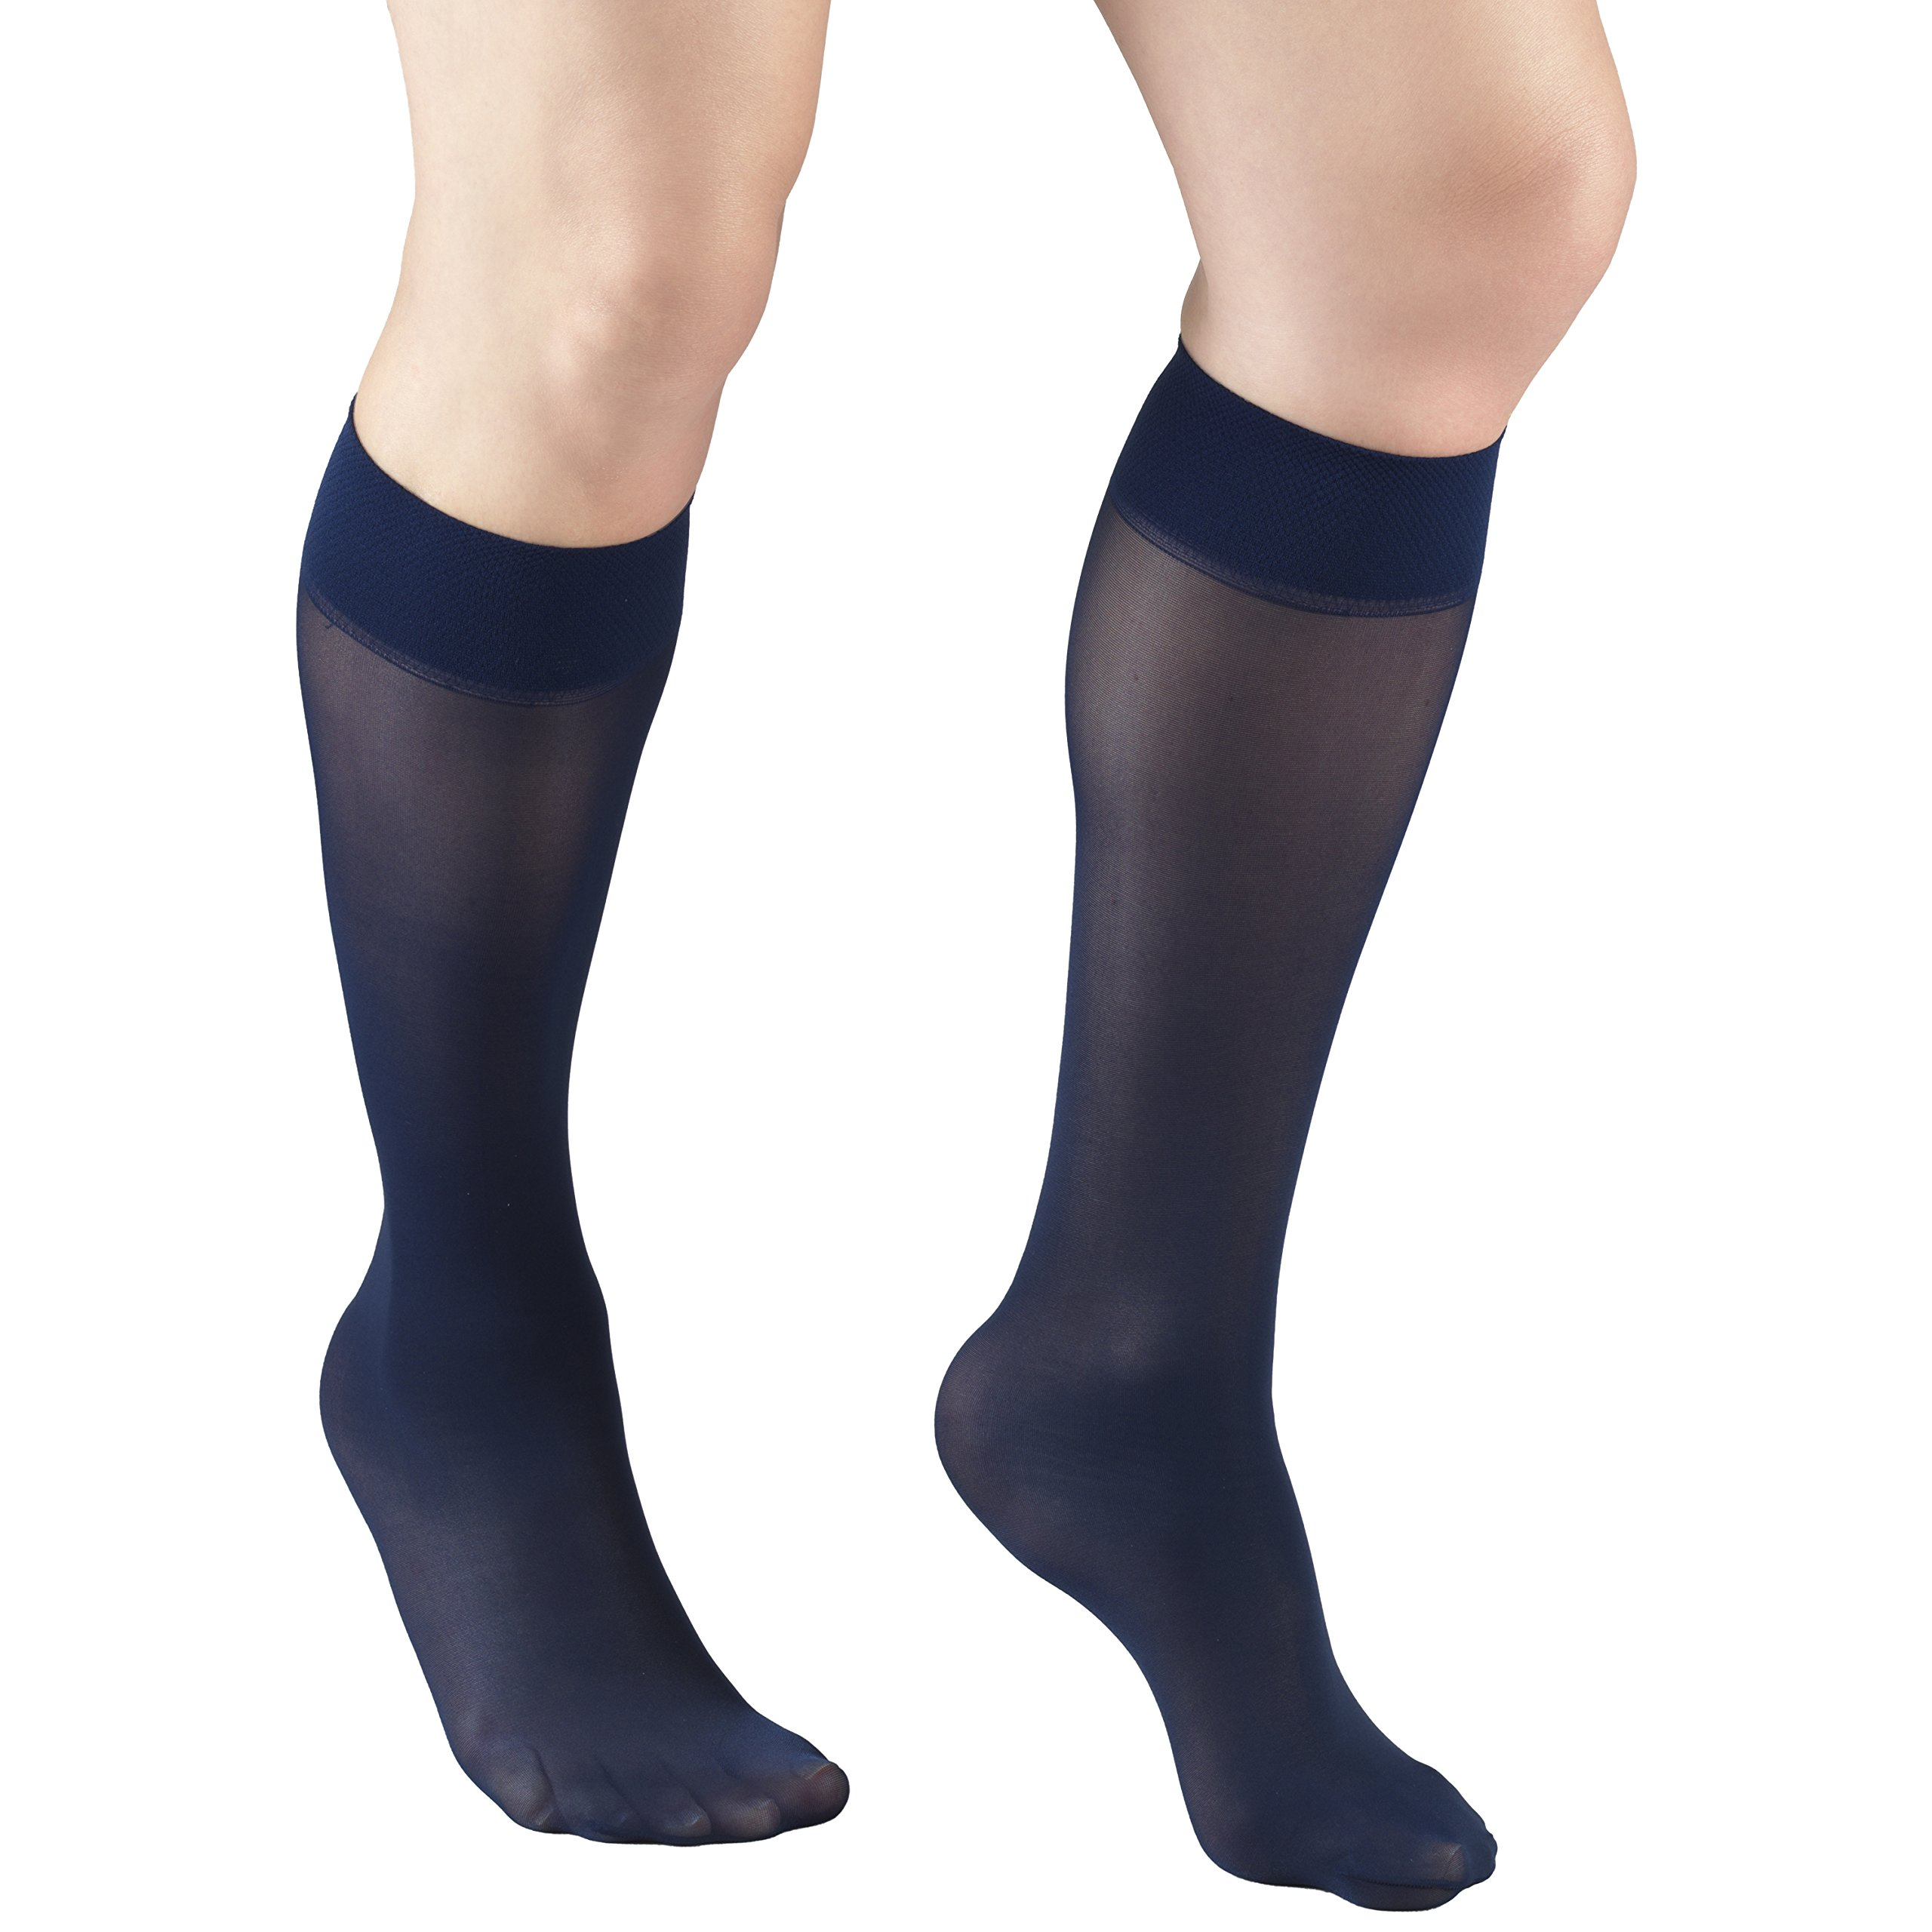 Truform Women's 8-15 mmHg Sheer Knee High Compression Stockings, Navy, X-Large